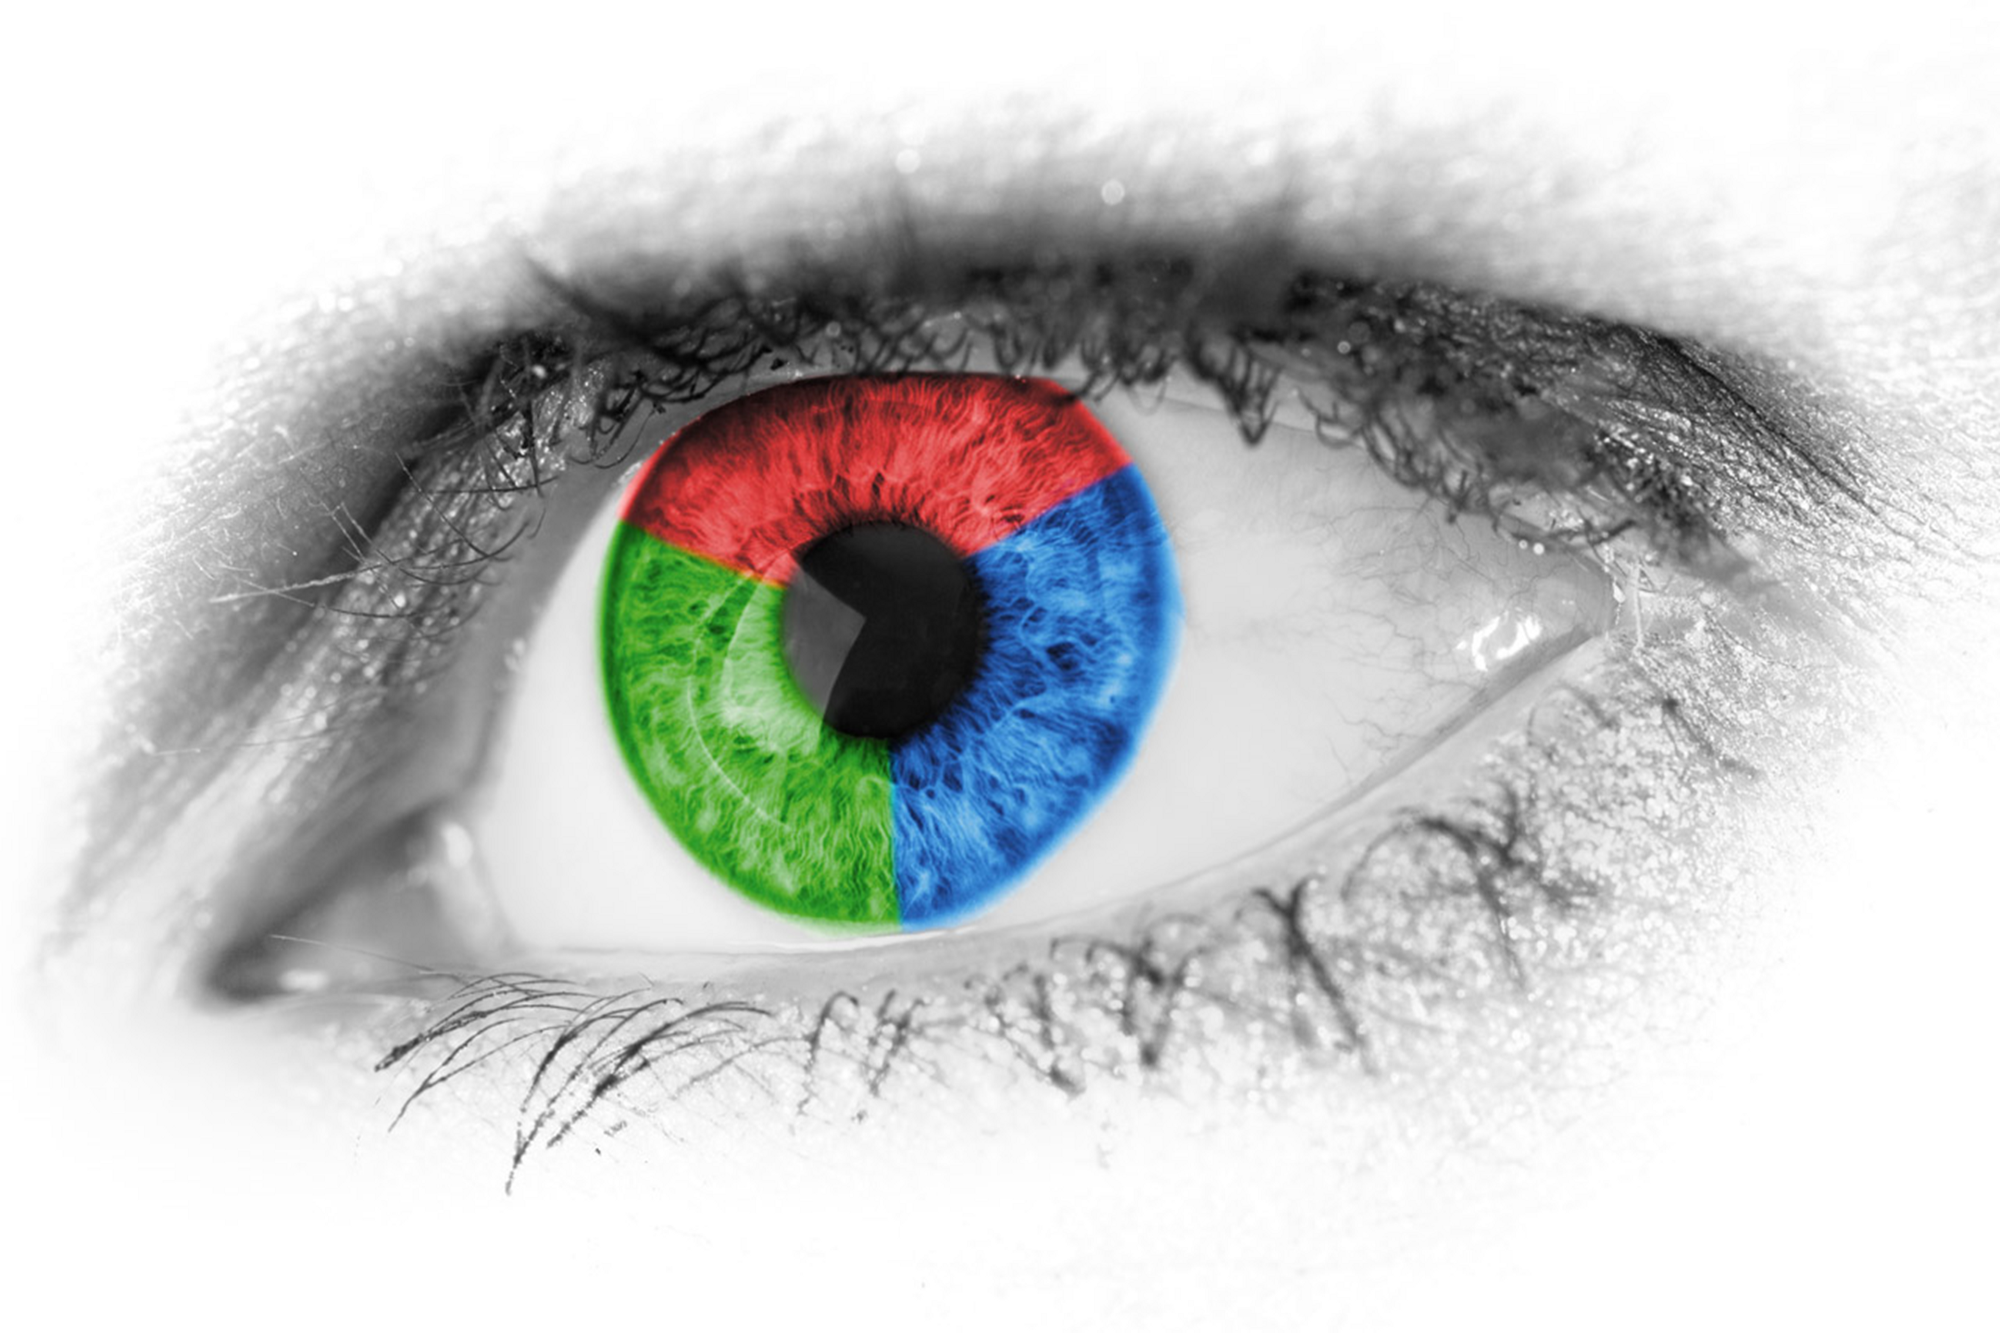 An eye with iris colored in three colors, namely, blue, green and red.